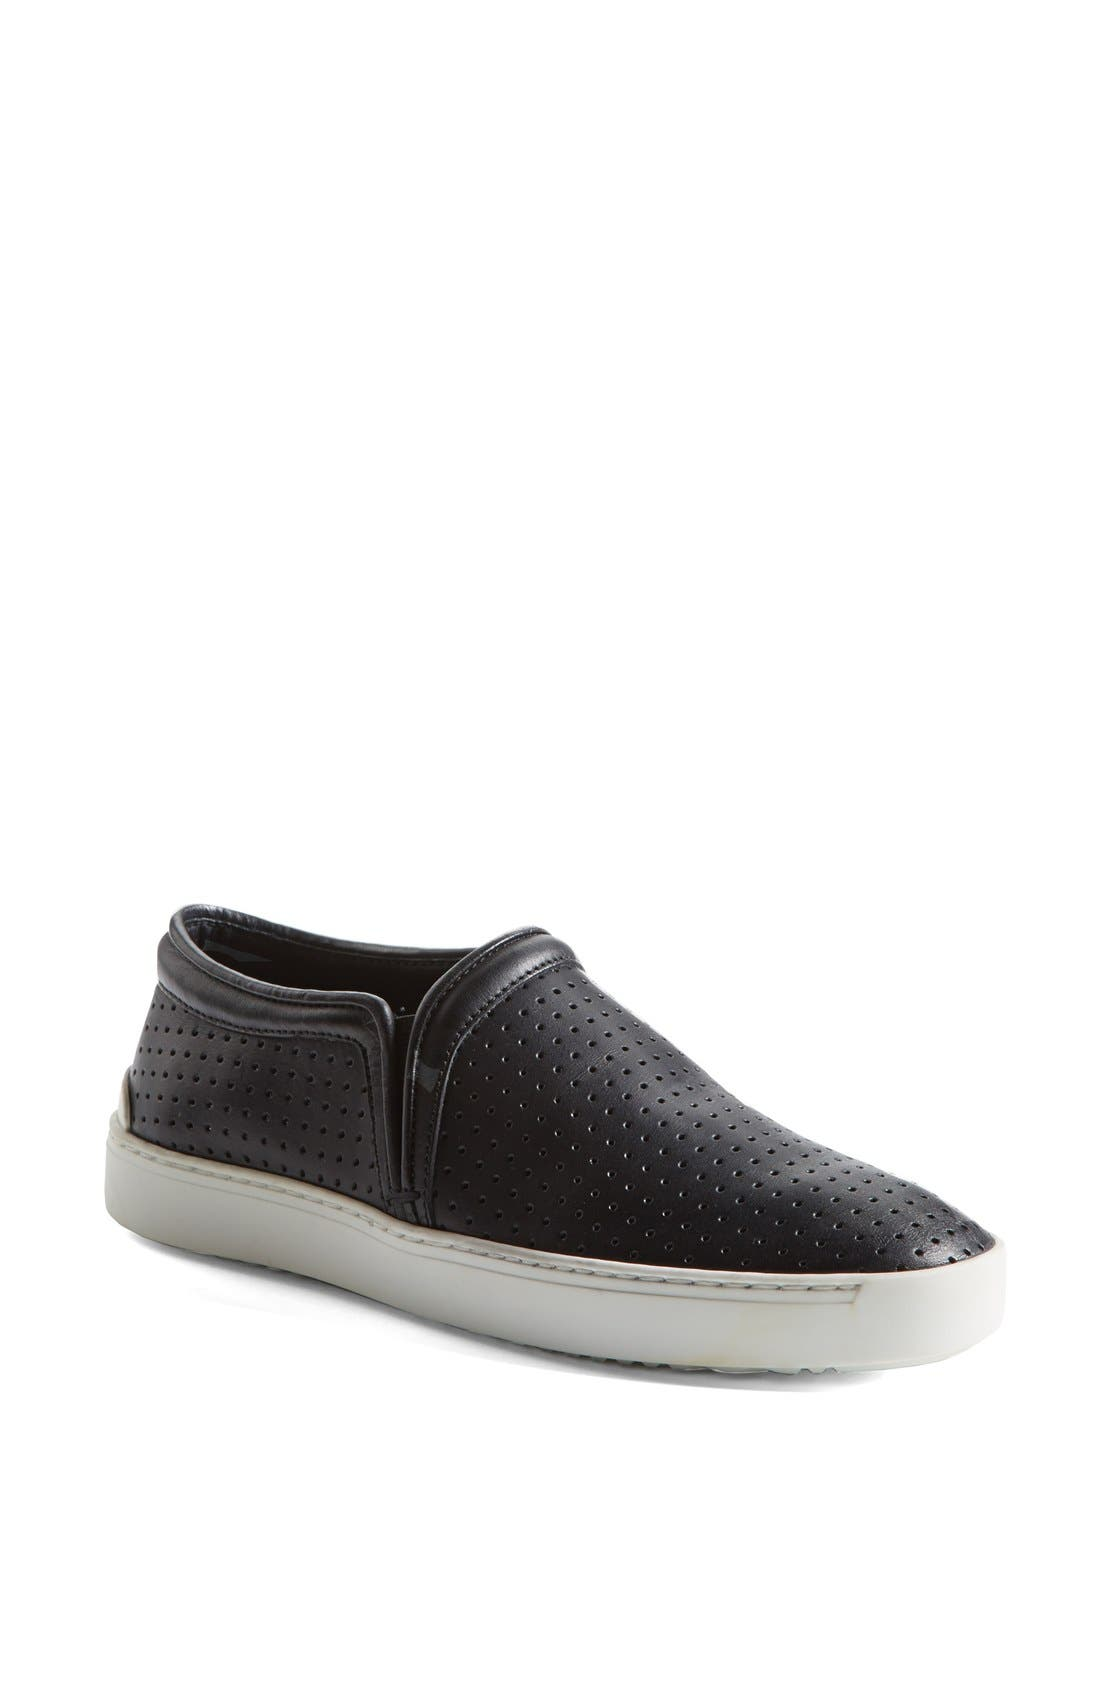 'Kent' Perforated Leather Slip-On,                         Main,                         color, 001